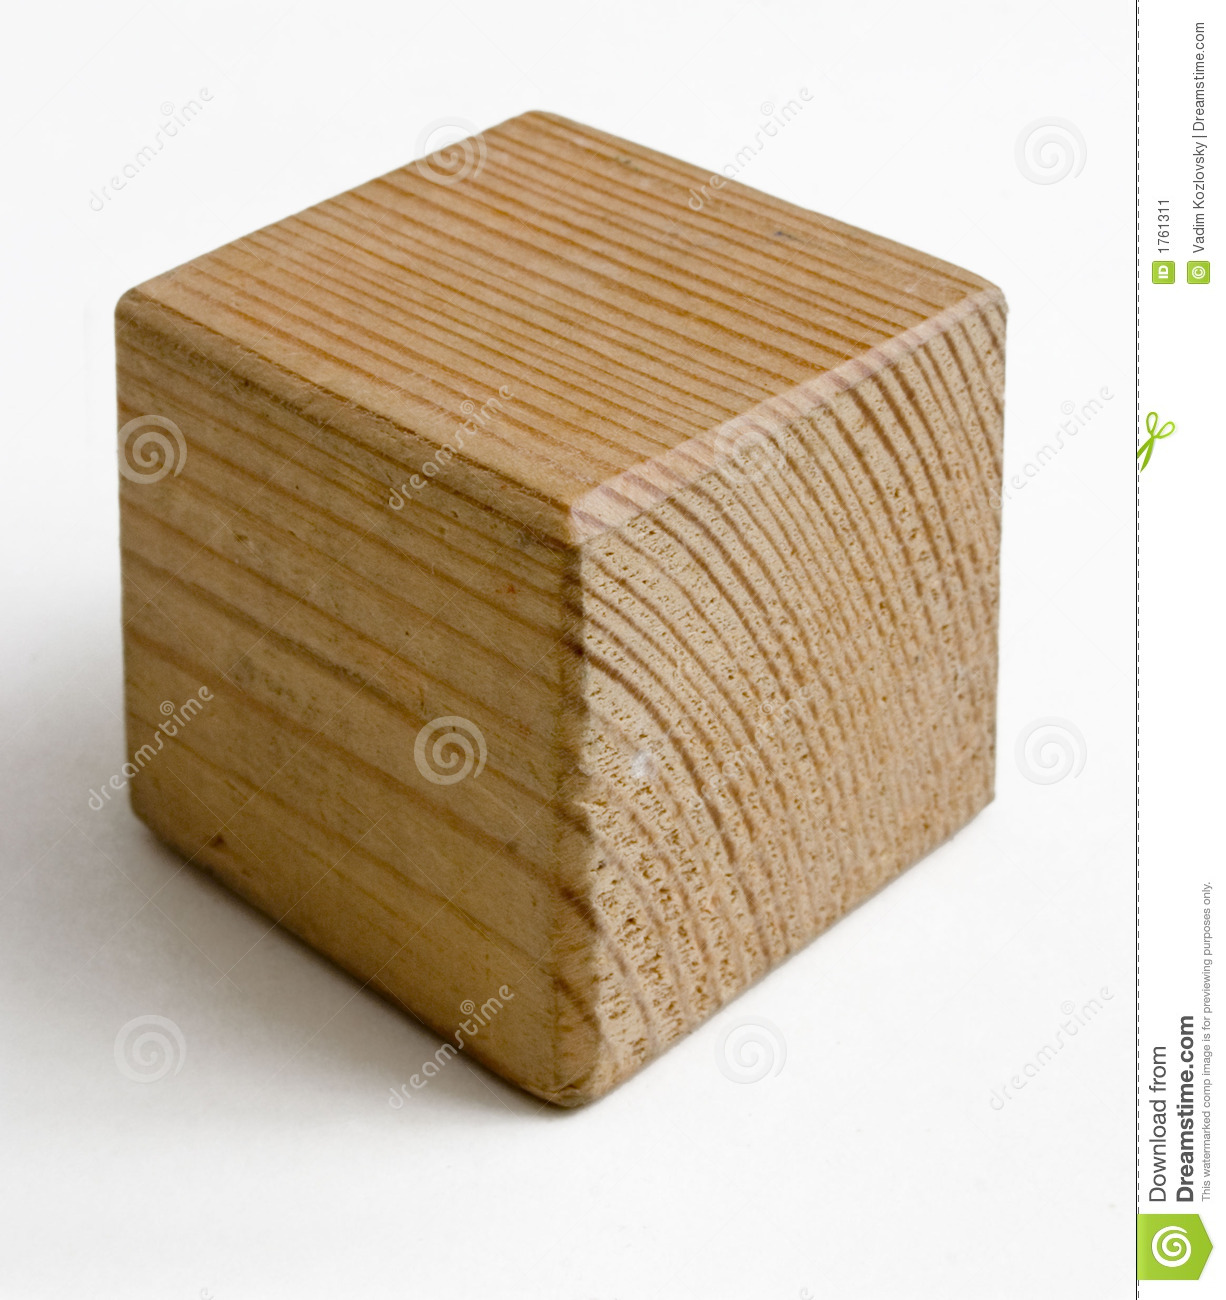 Wooden Cube Stock Image - Image: 1761311